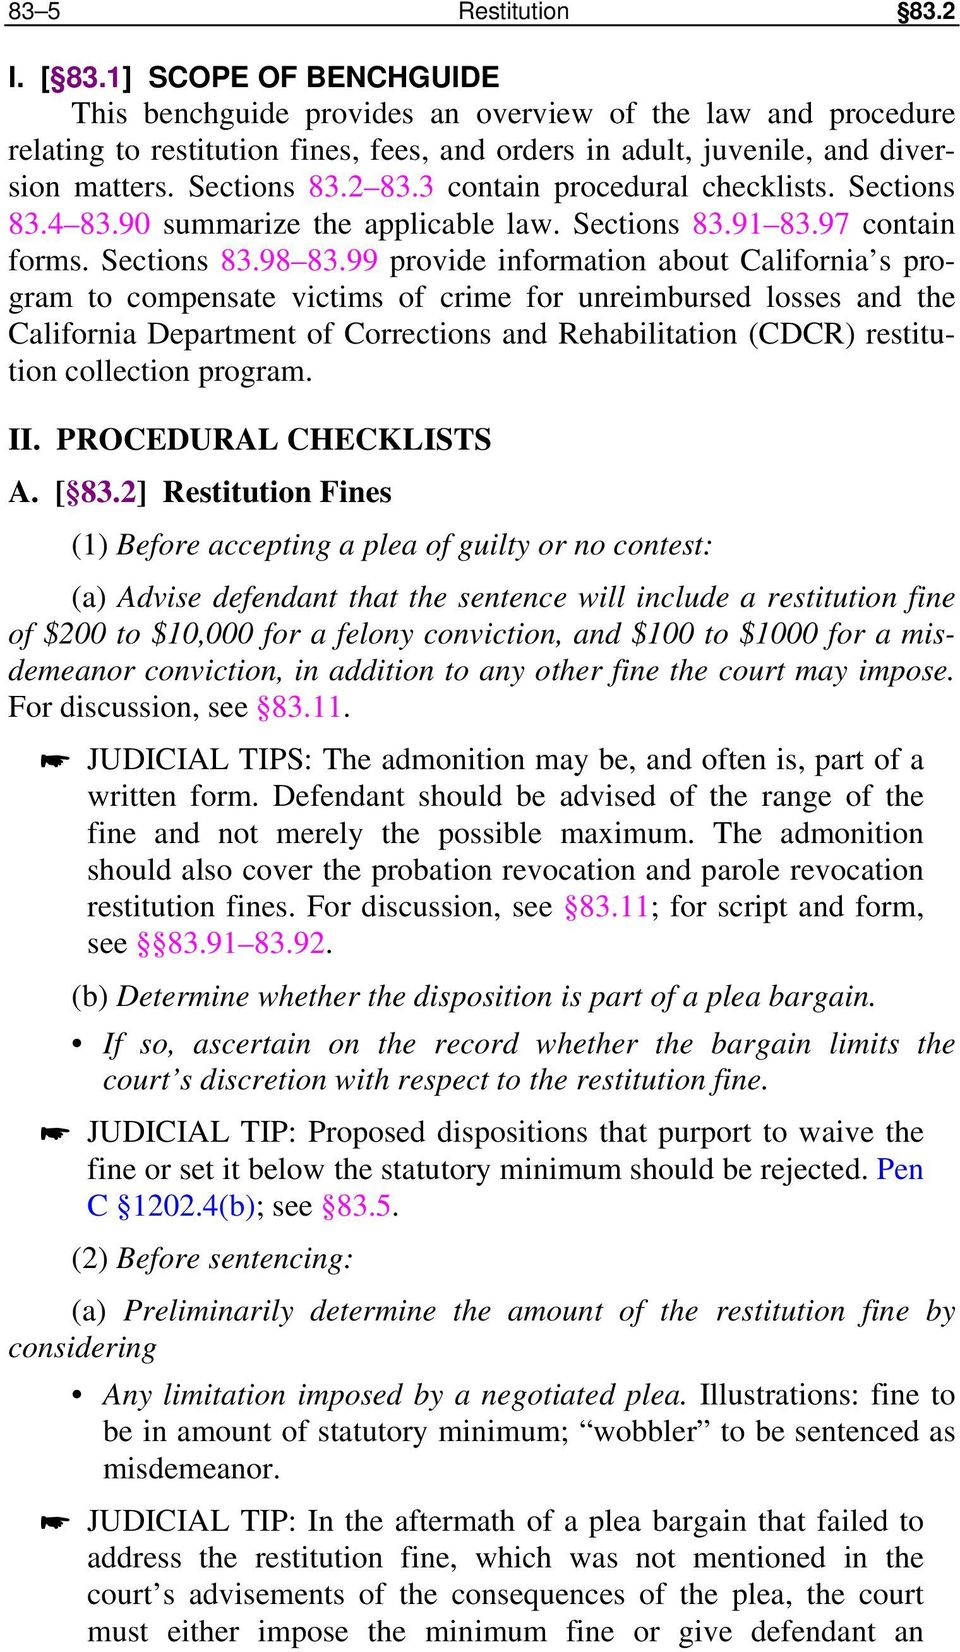 3 contain procedural checklists. Sections 83.4 83.90 summarize the applicable law. Sections 83.91 83.97 contain forms. Sections 83.98 83.